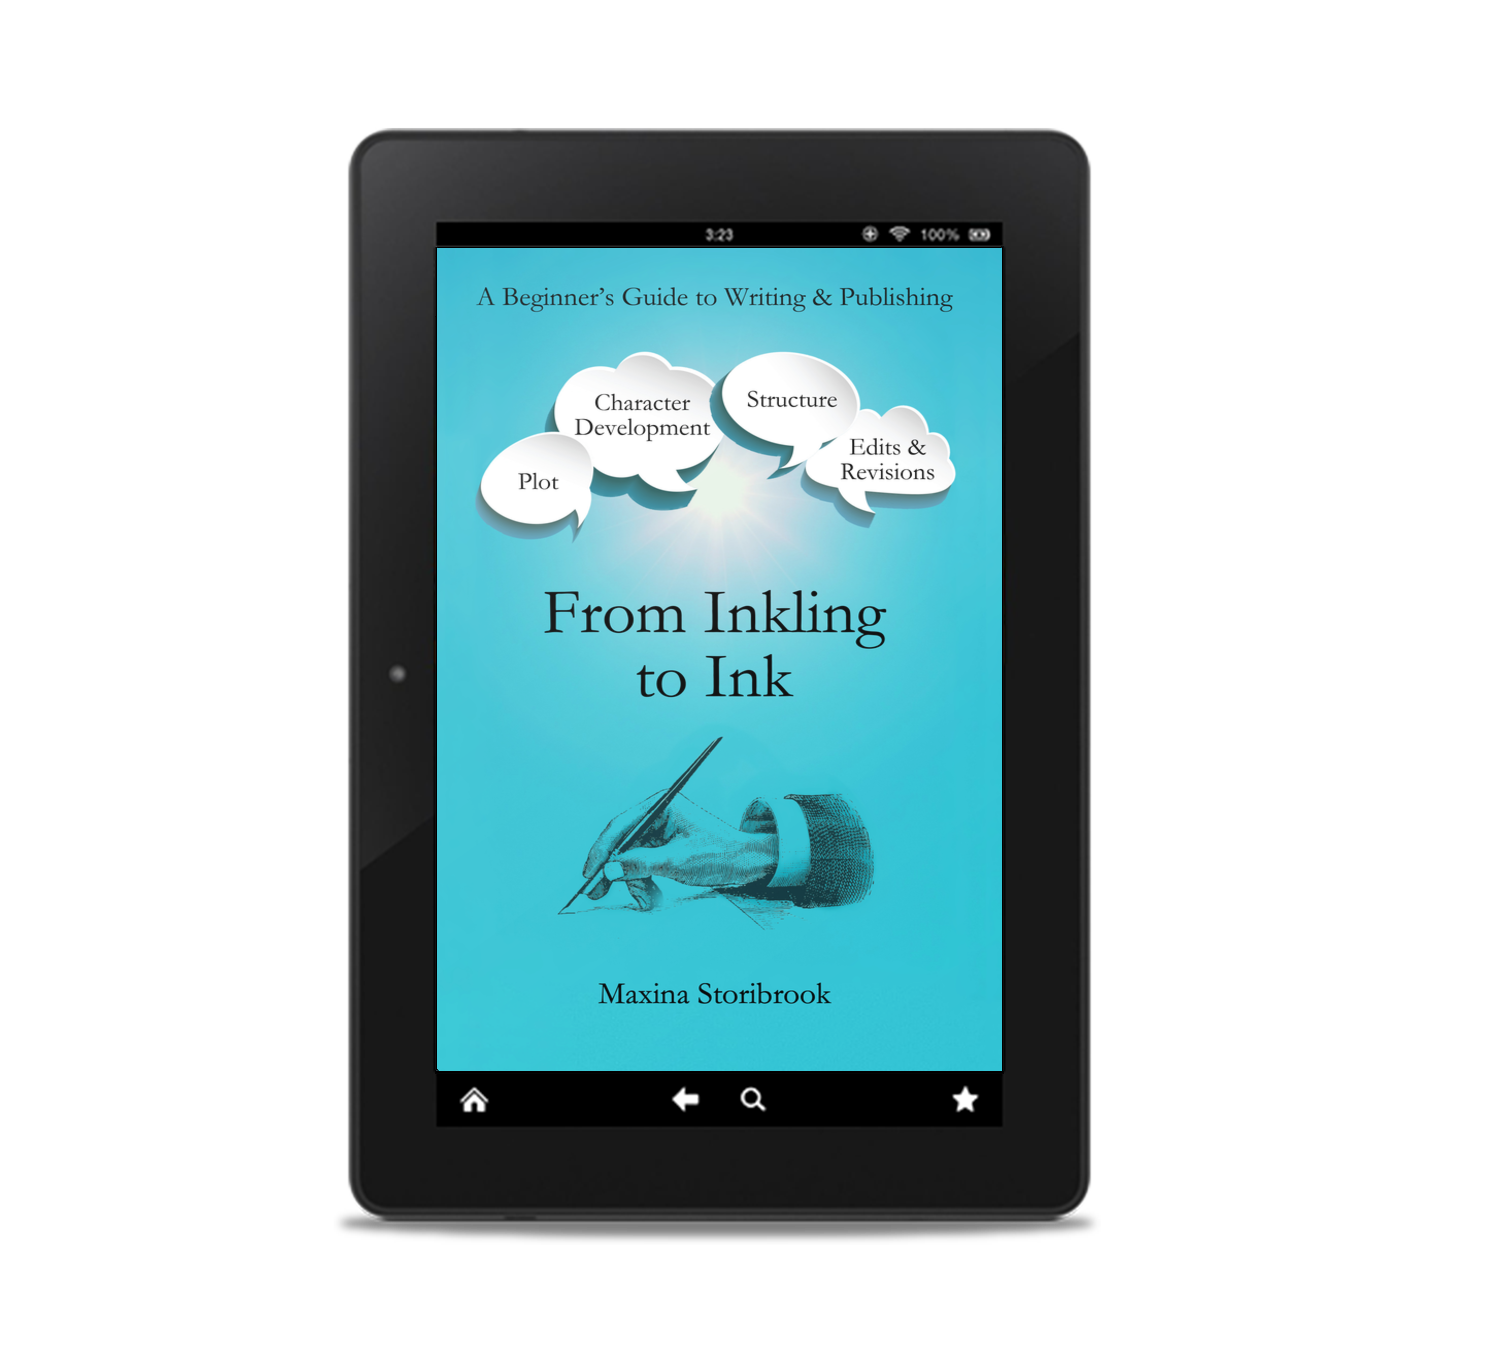 From Inkling to Ink: Writing & Publishing Guide Ebook